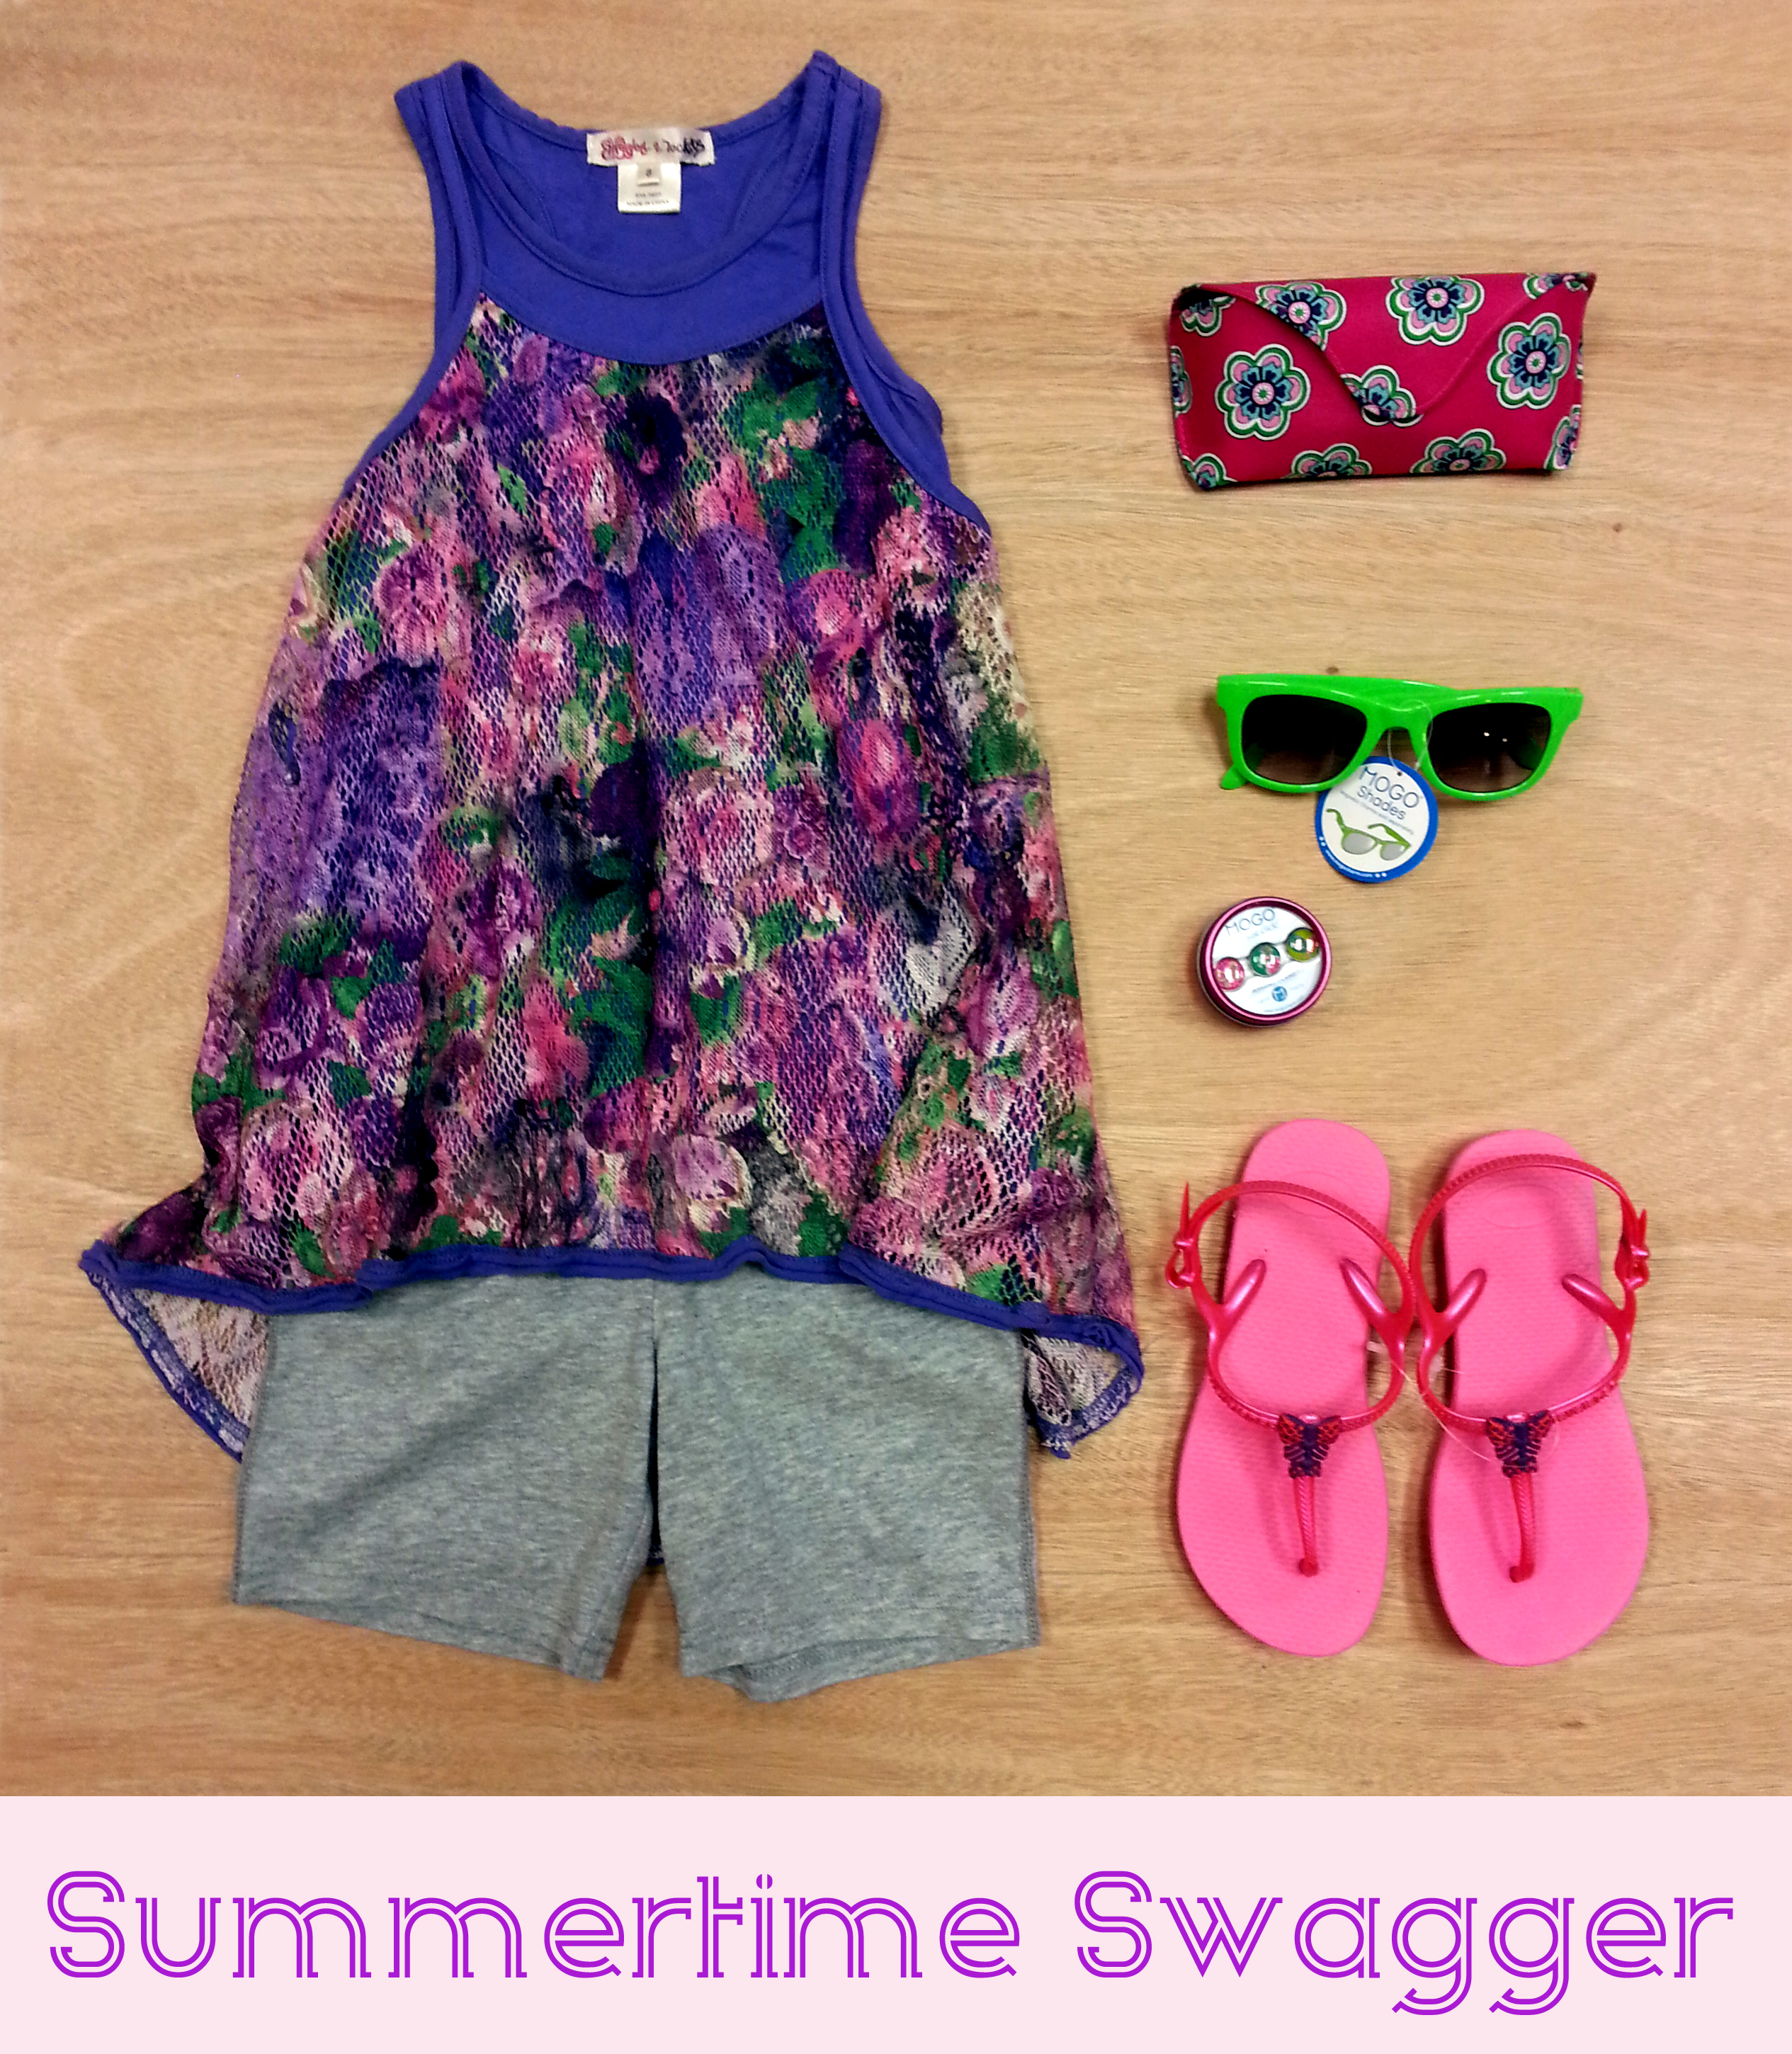 Sporty floral tank and knit shorts from Ragdoll & Rockets with Mogo sunglasses, Vera Bradley sunglasses case and pink Havaianas